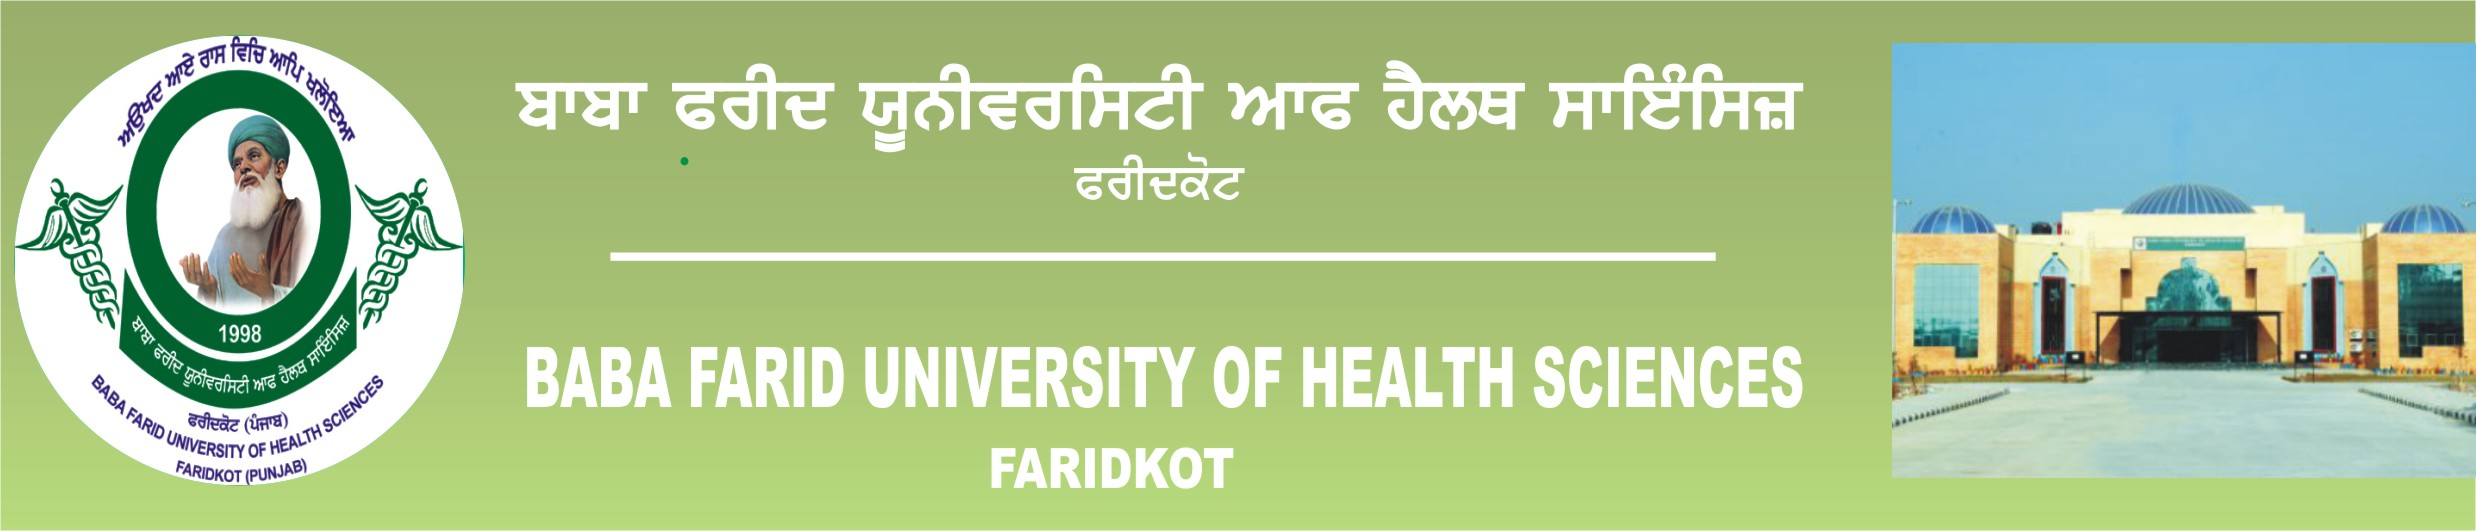 Baba Farid University of Health Sciendes,Faridkot